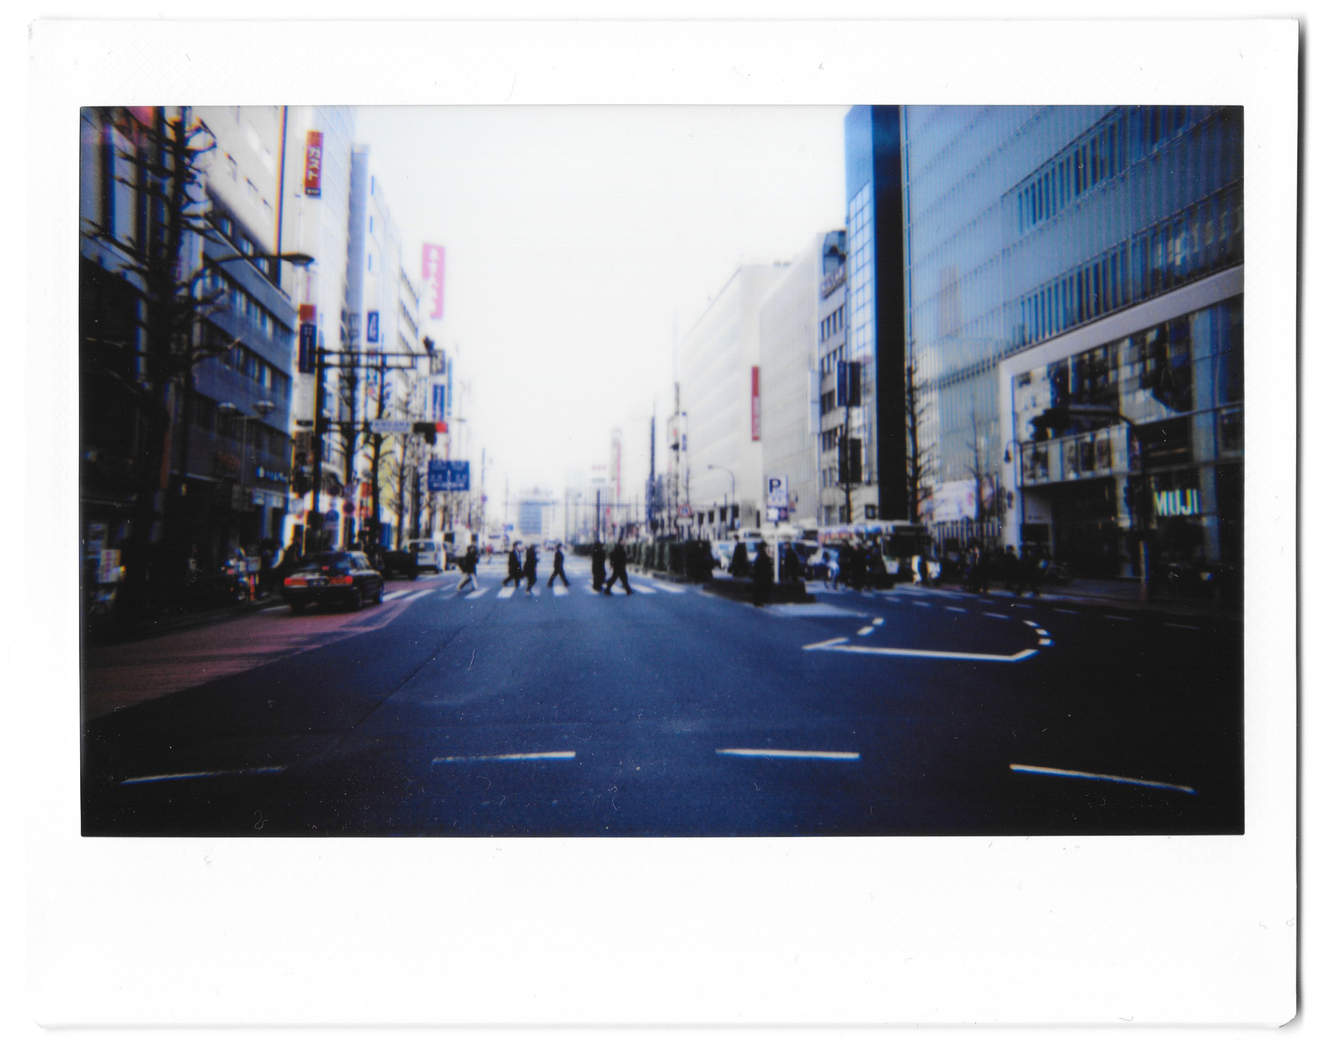 """Instant photo for Day 132 of """"A Year in an Instant"""" by Nuno Coelho Santos"""